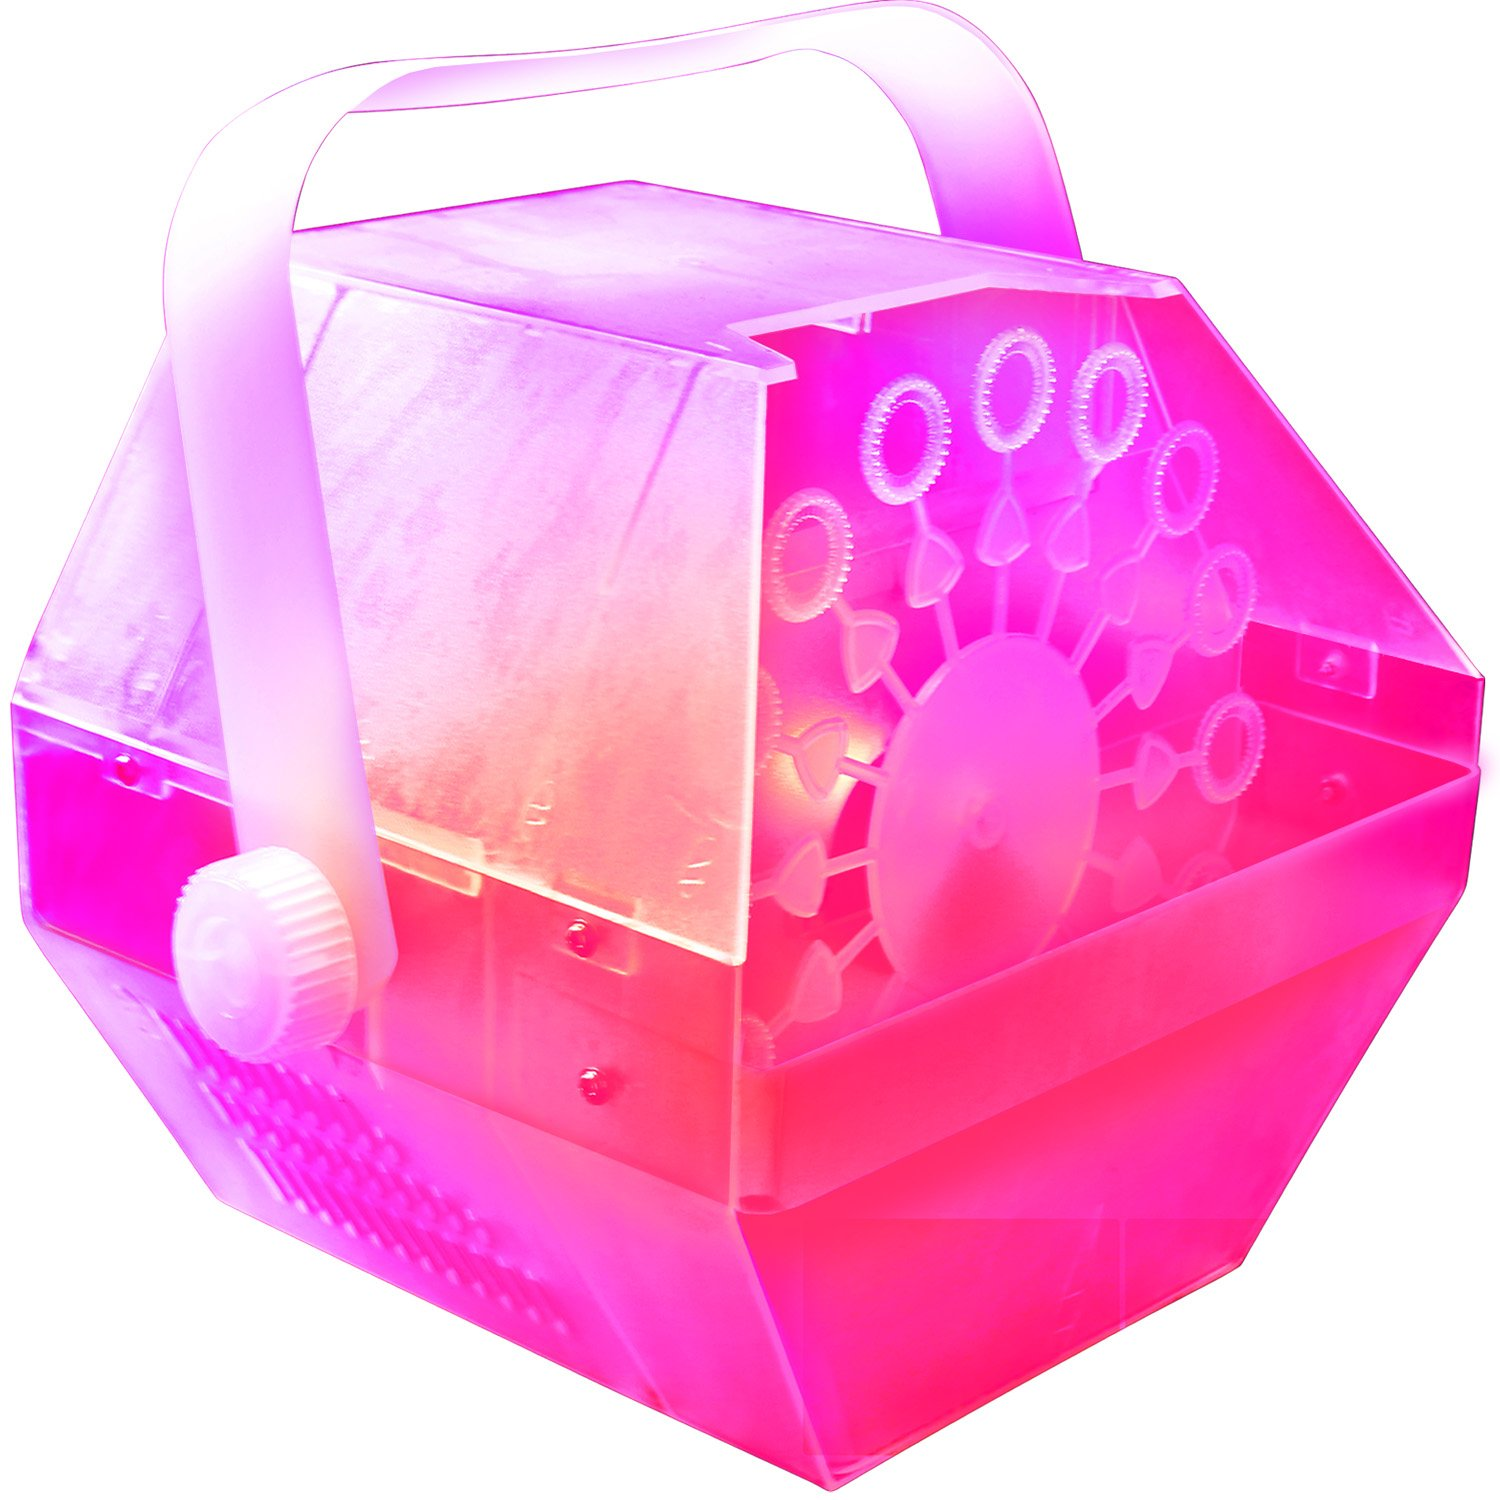 LED Bubble Machine - Lights Up Changing Colors to the Beat of the Music as it Makes Lots of Bubbles. Great for Birthday Parties. by Adkins Profesional Lighting